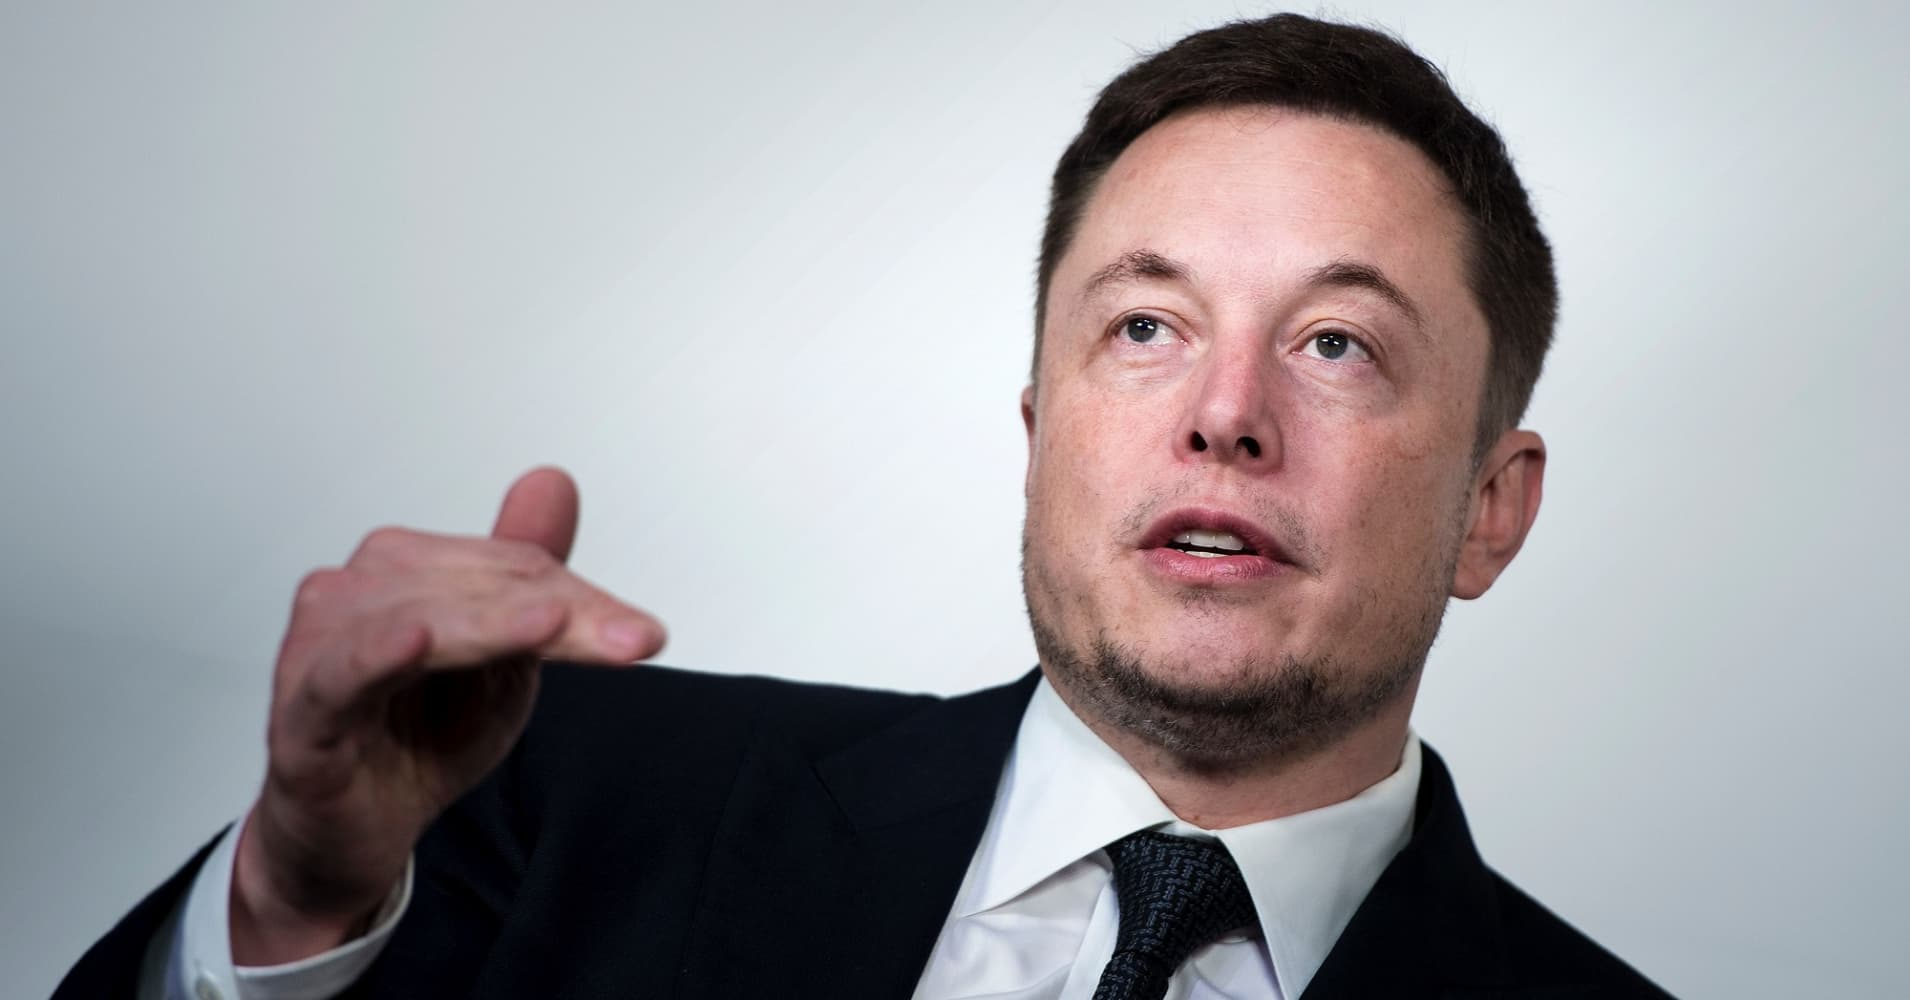 Elon Musk This Question Can Help Fix The U S Education